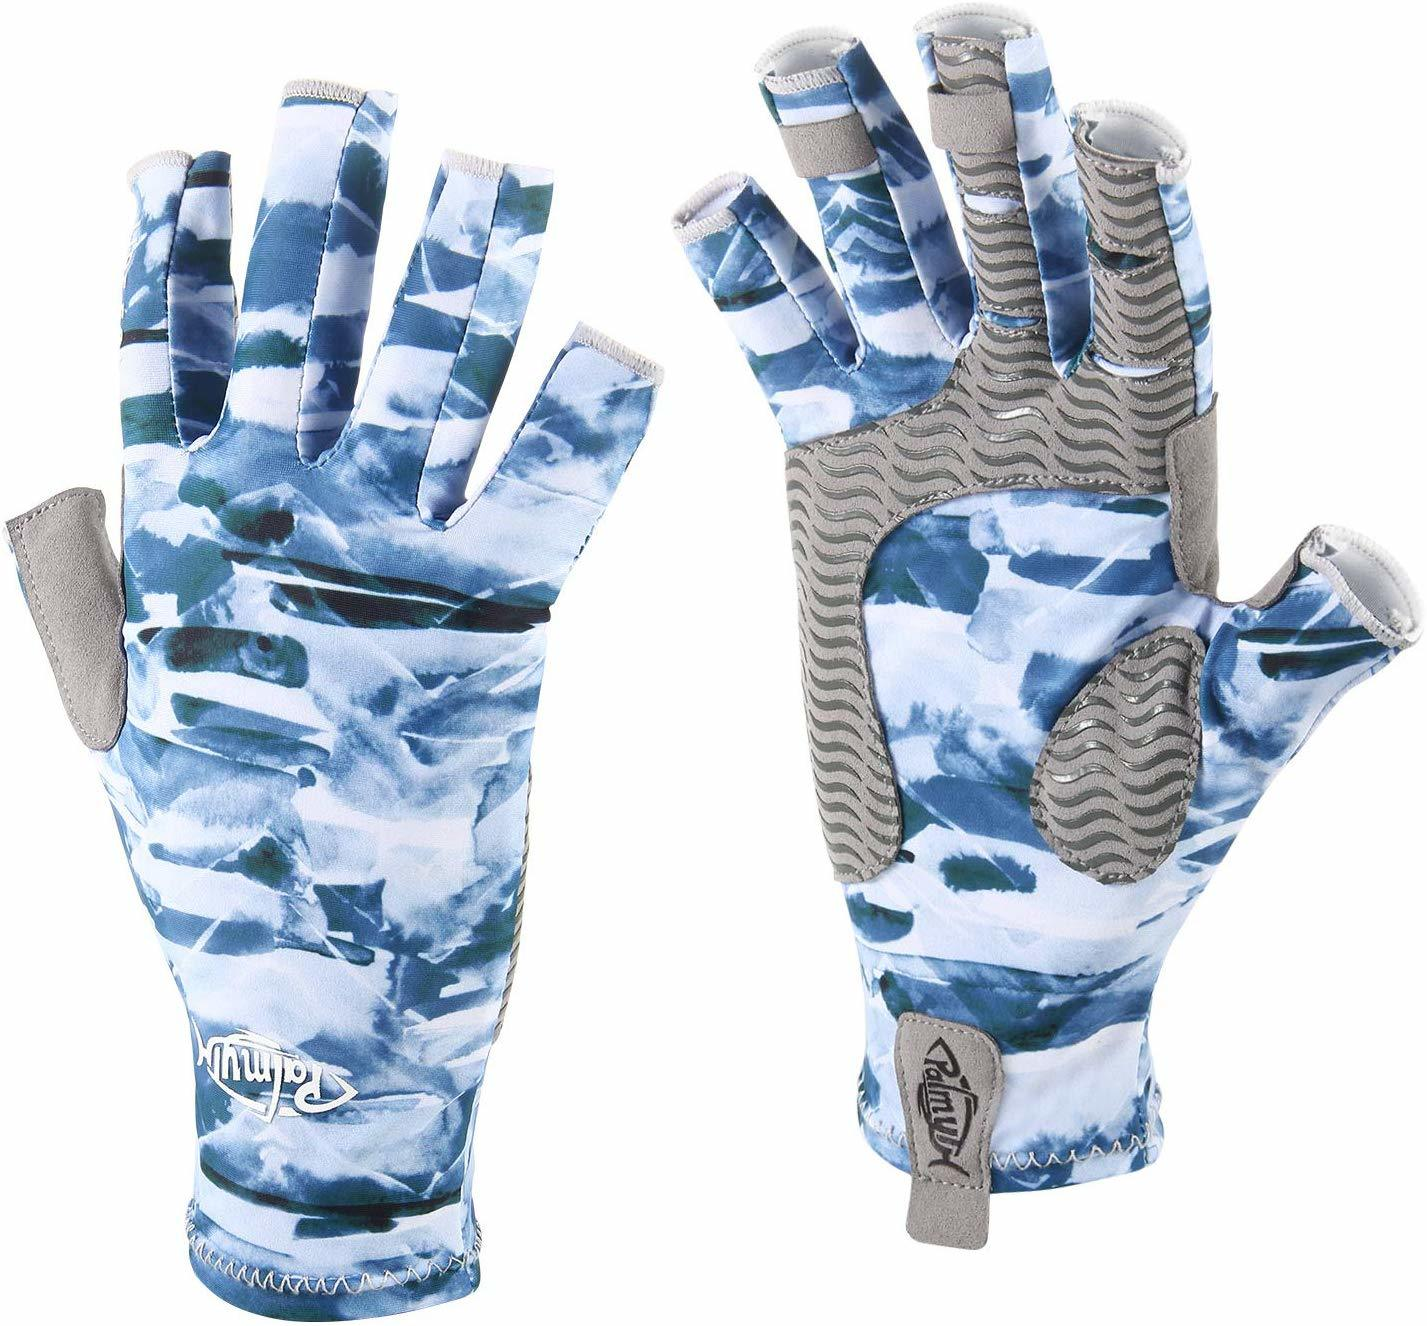 10 Sailing Gloves that will Protect Your Hands While Doing Water Sports 3